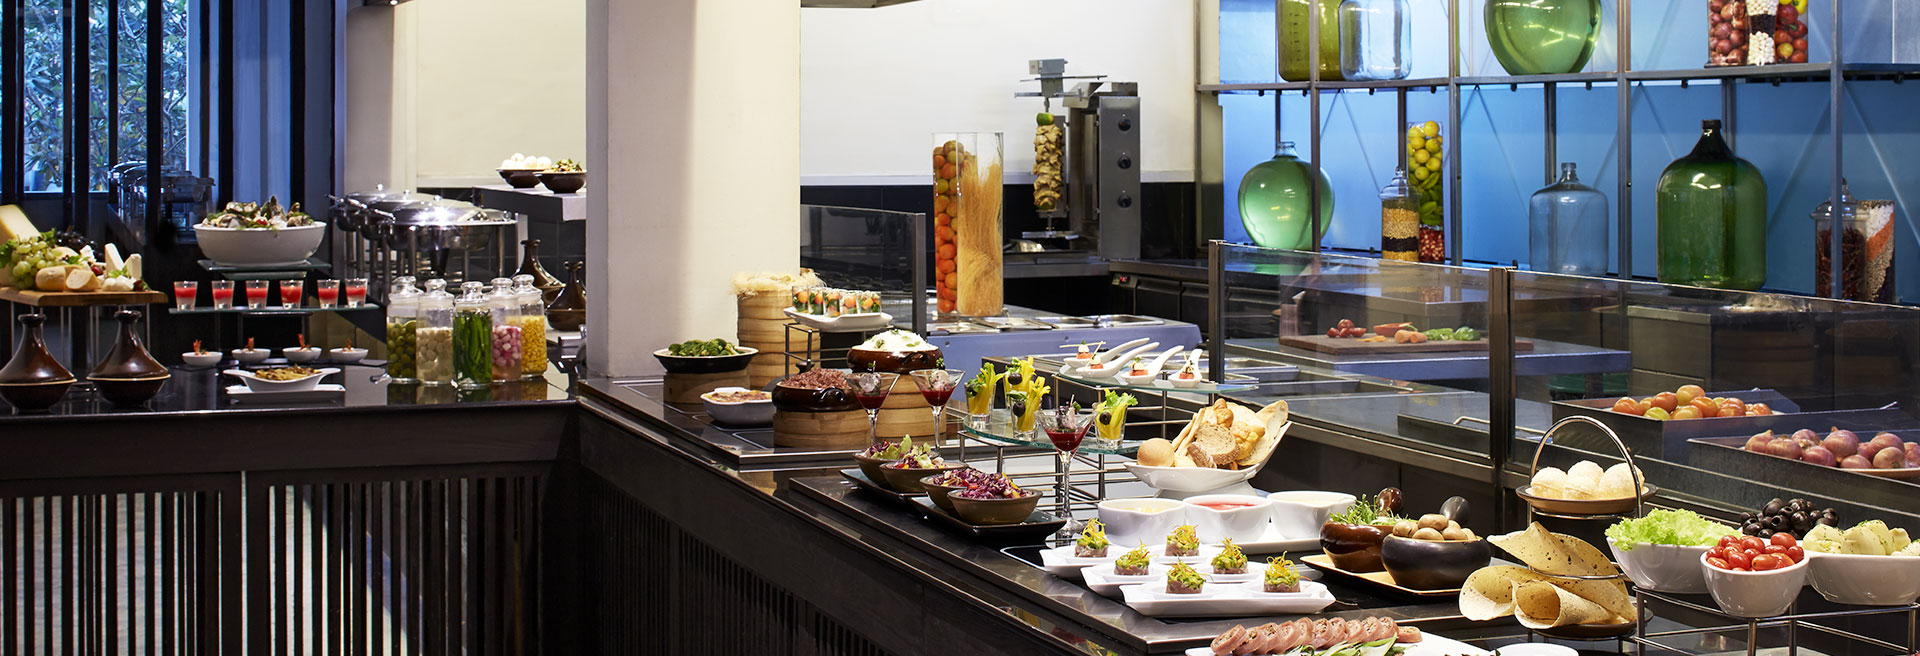 Buffet spread at the main restuarant